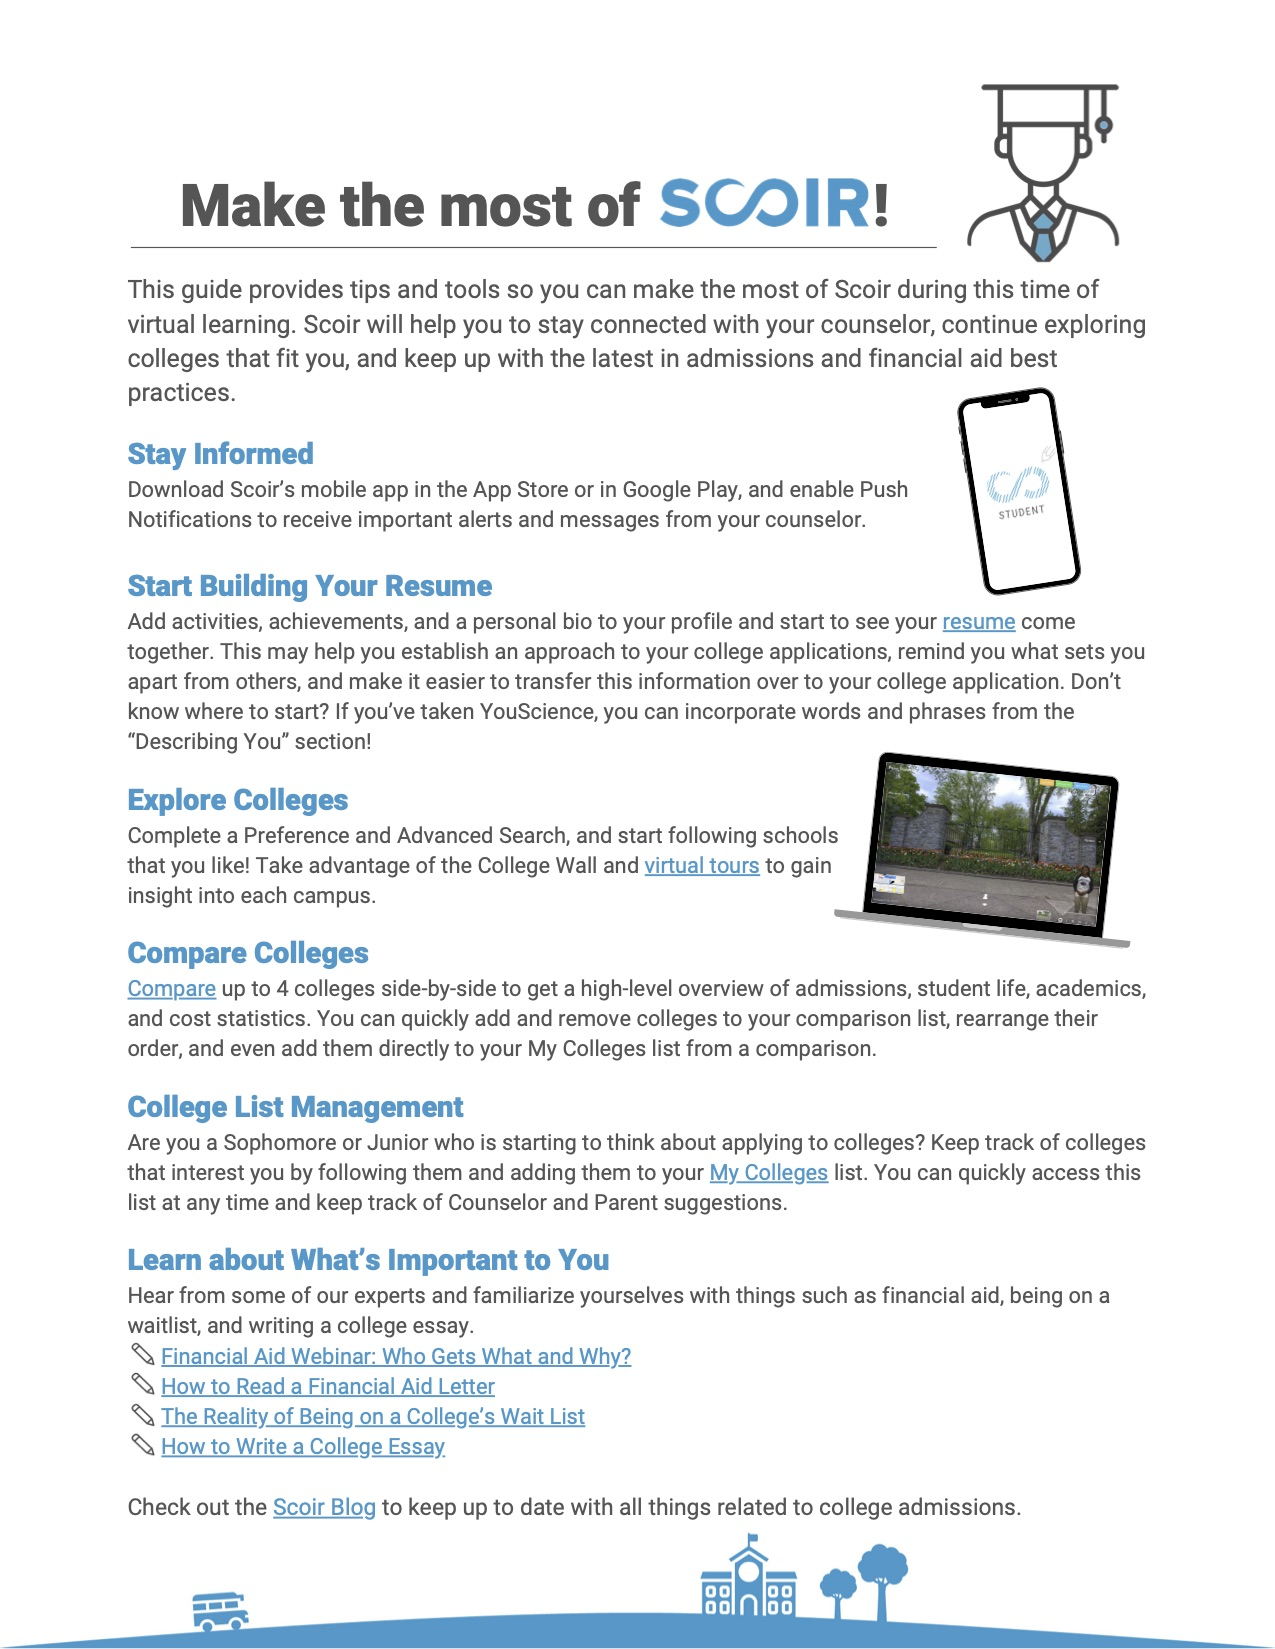 Students - Make the Most of Scoir copy